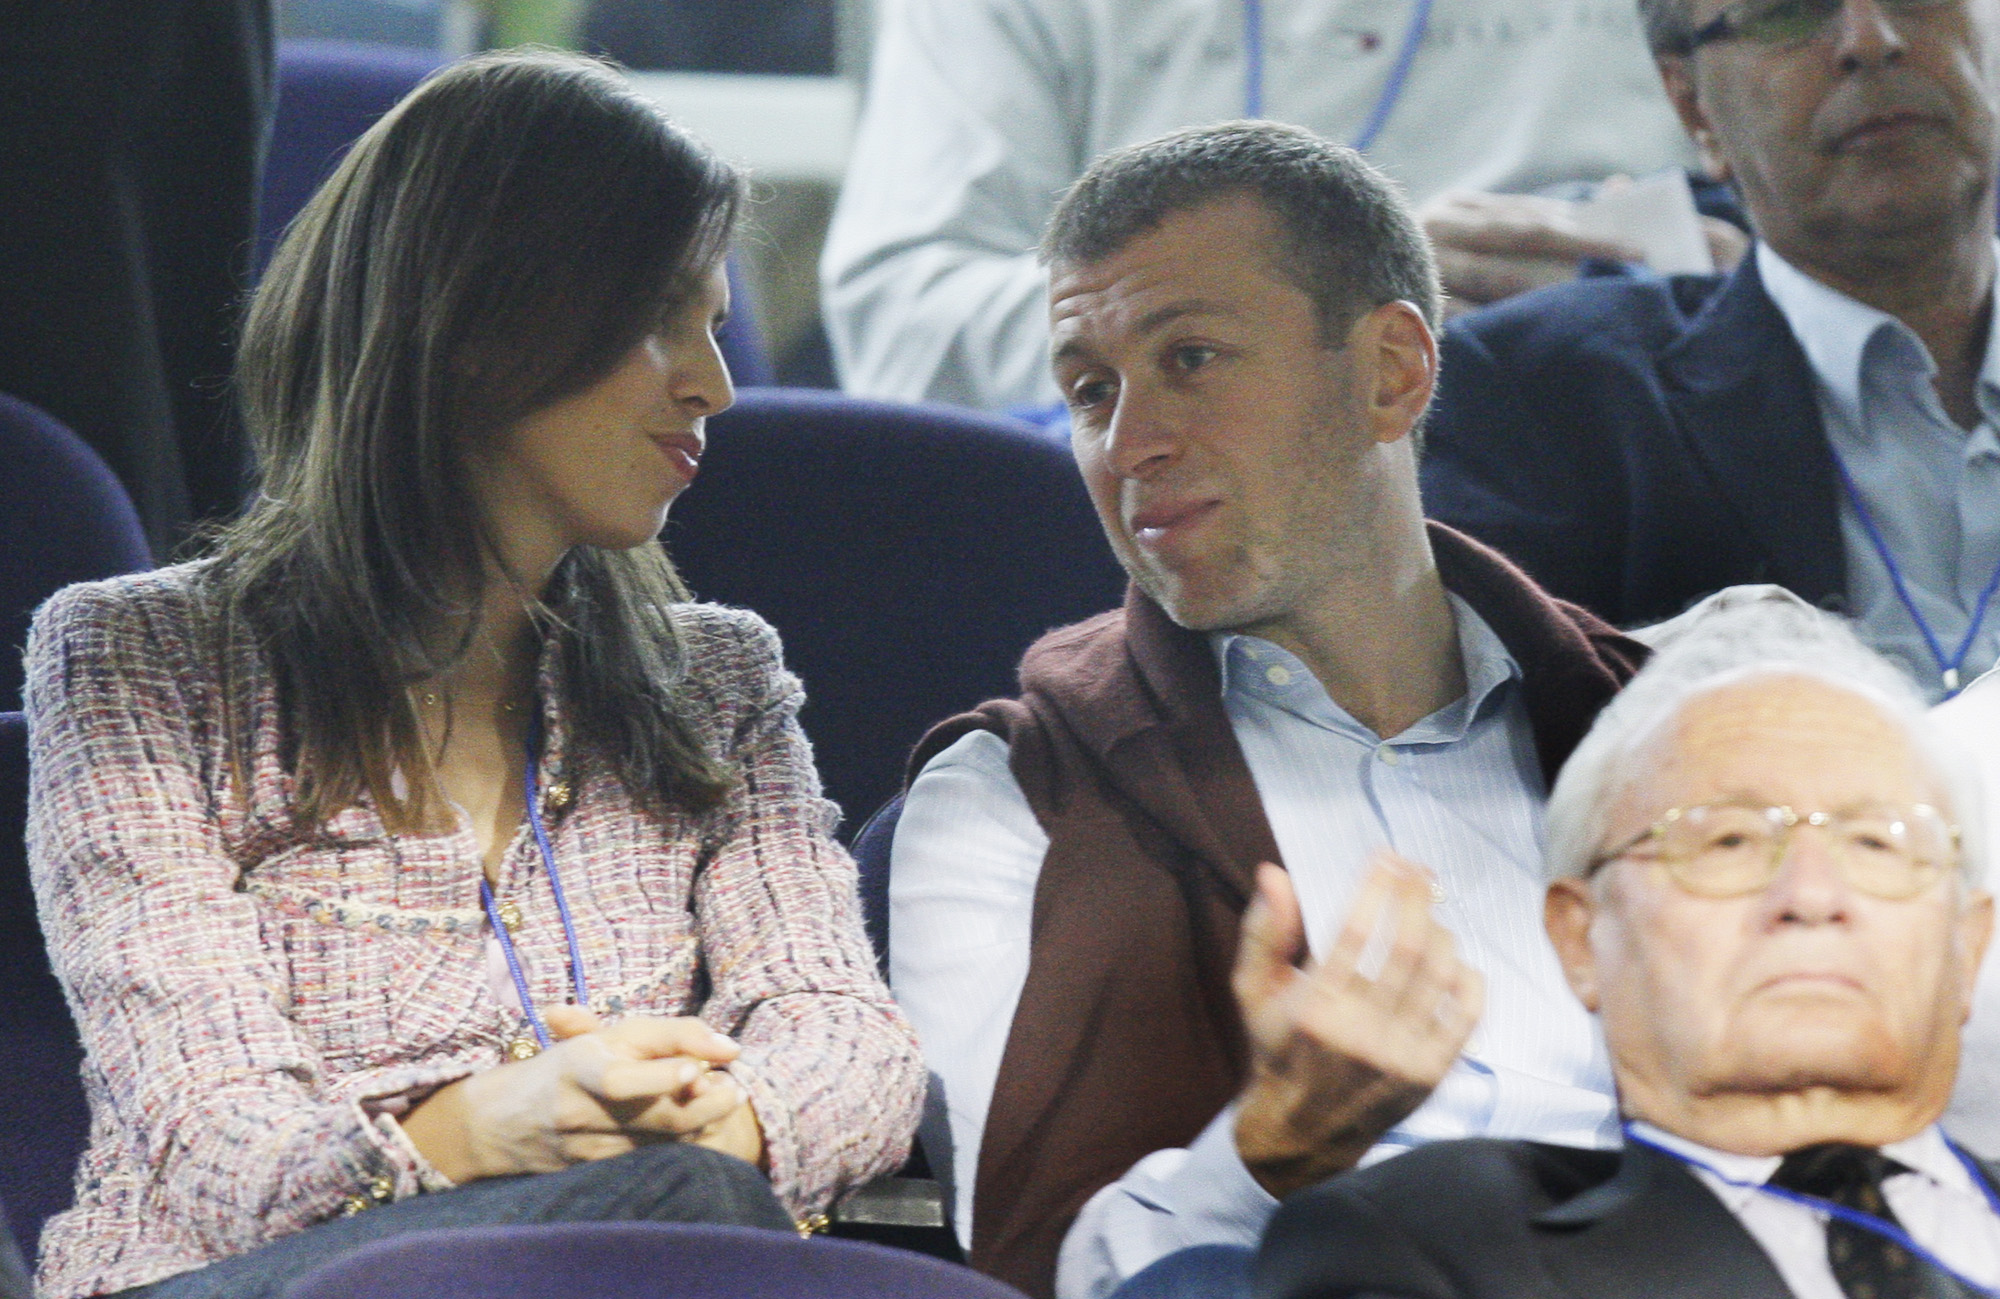 Russian Oligarch Abramovich Takes Israeli Citizenship